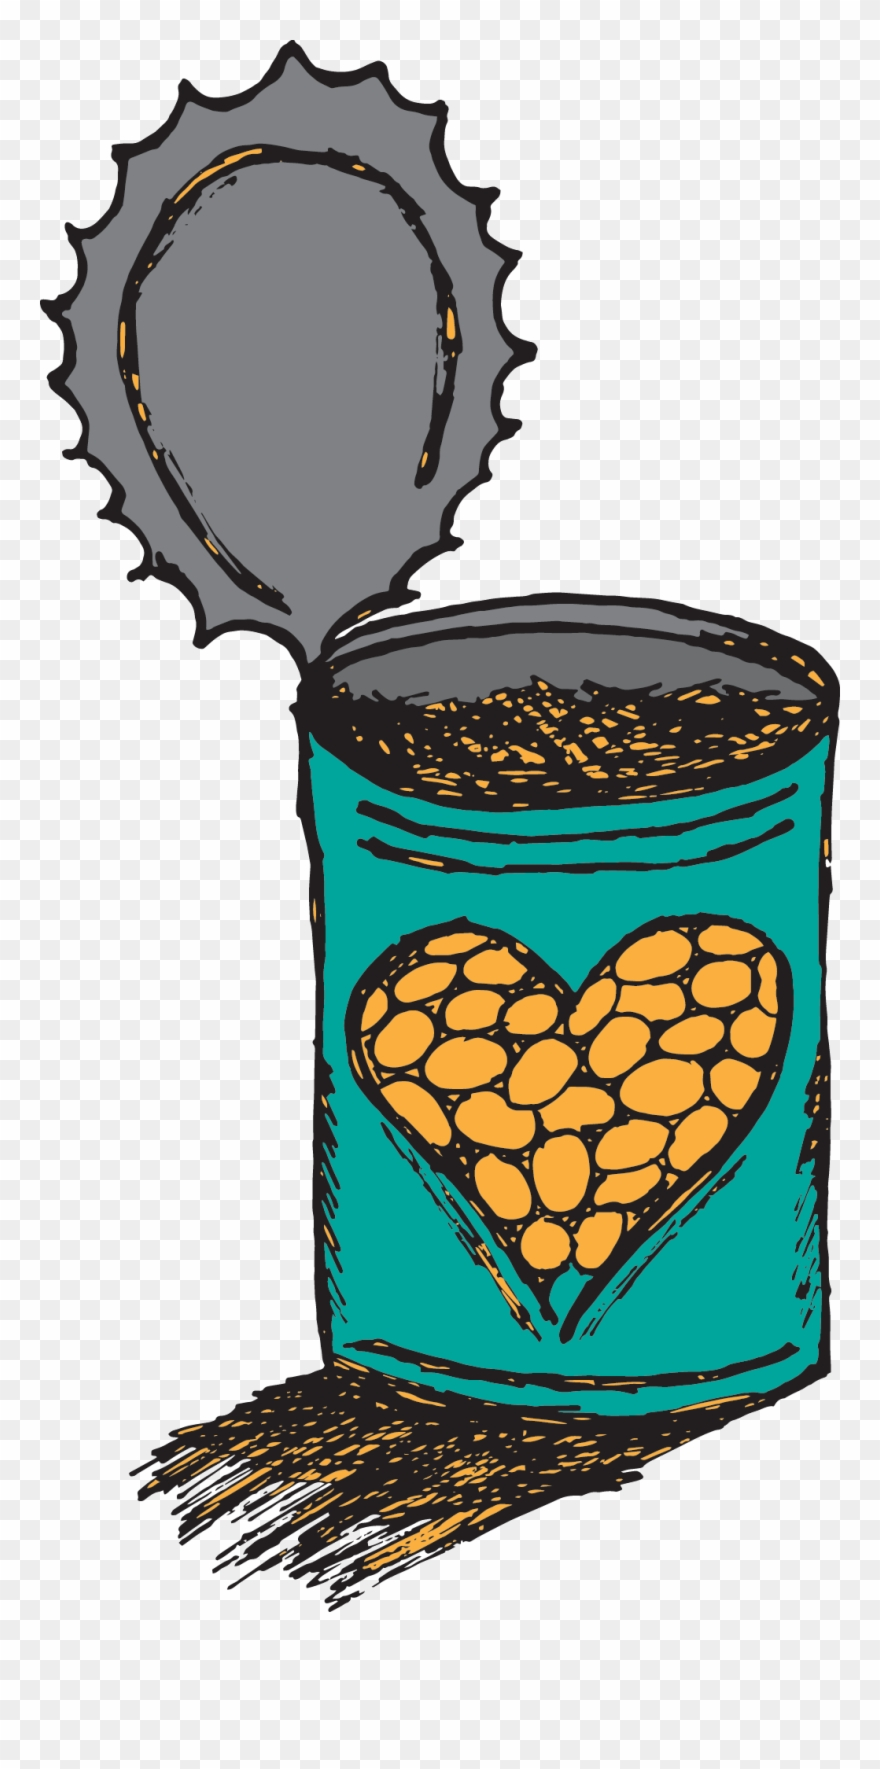 Beans png download pinclipart. Bean clipart canned